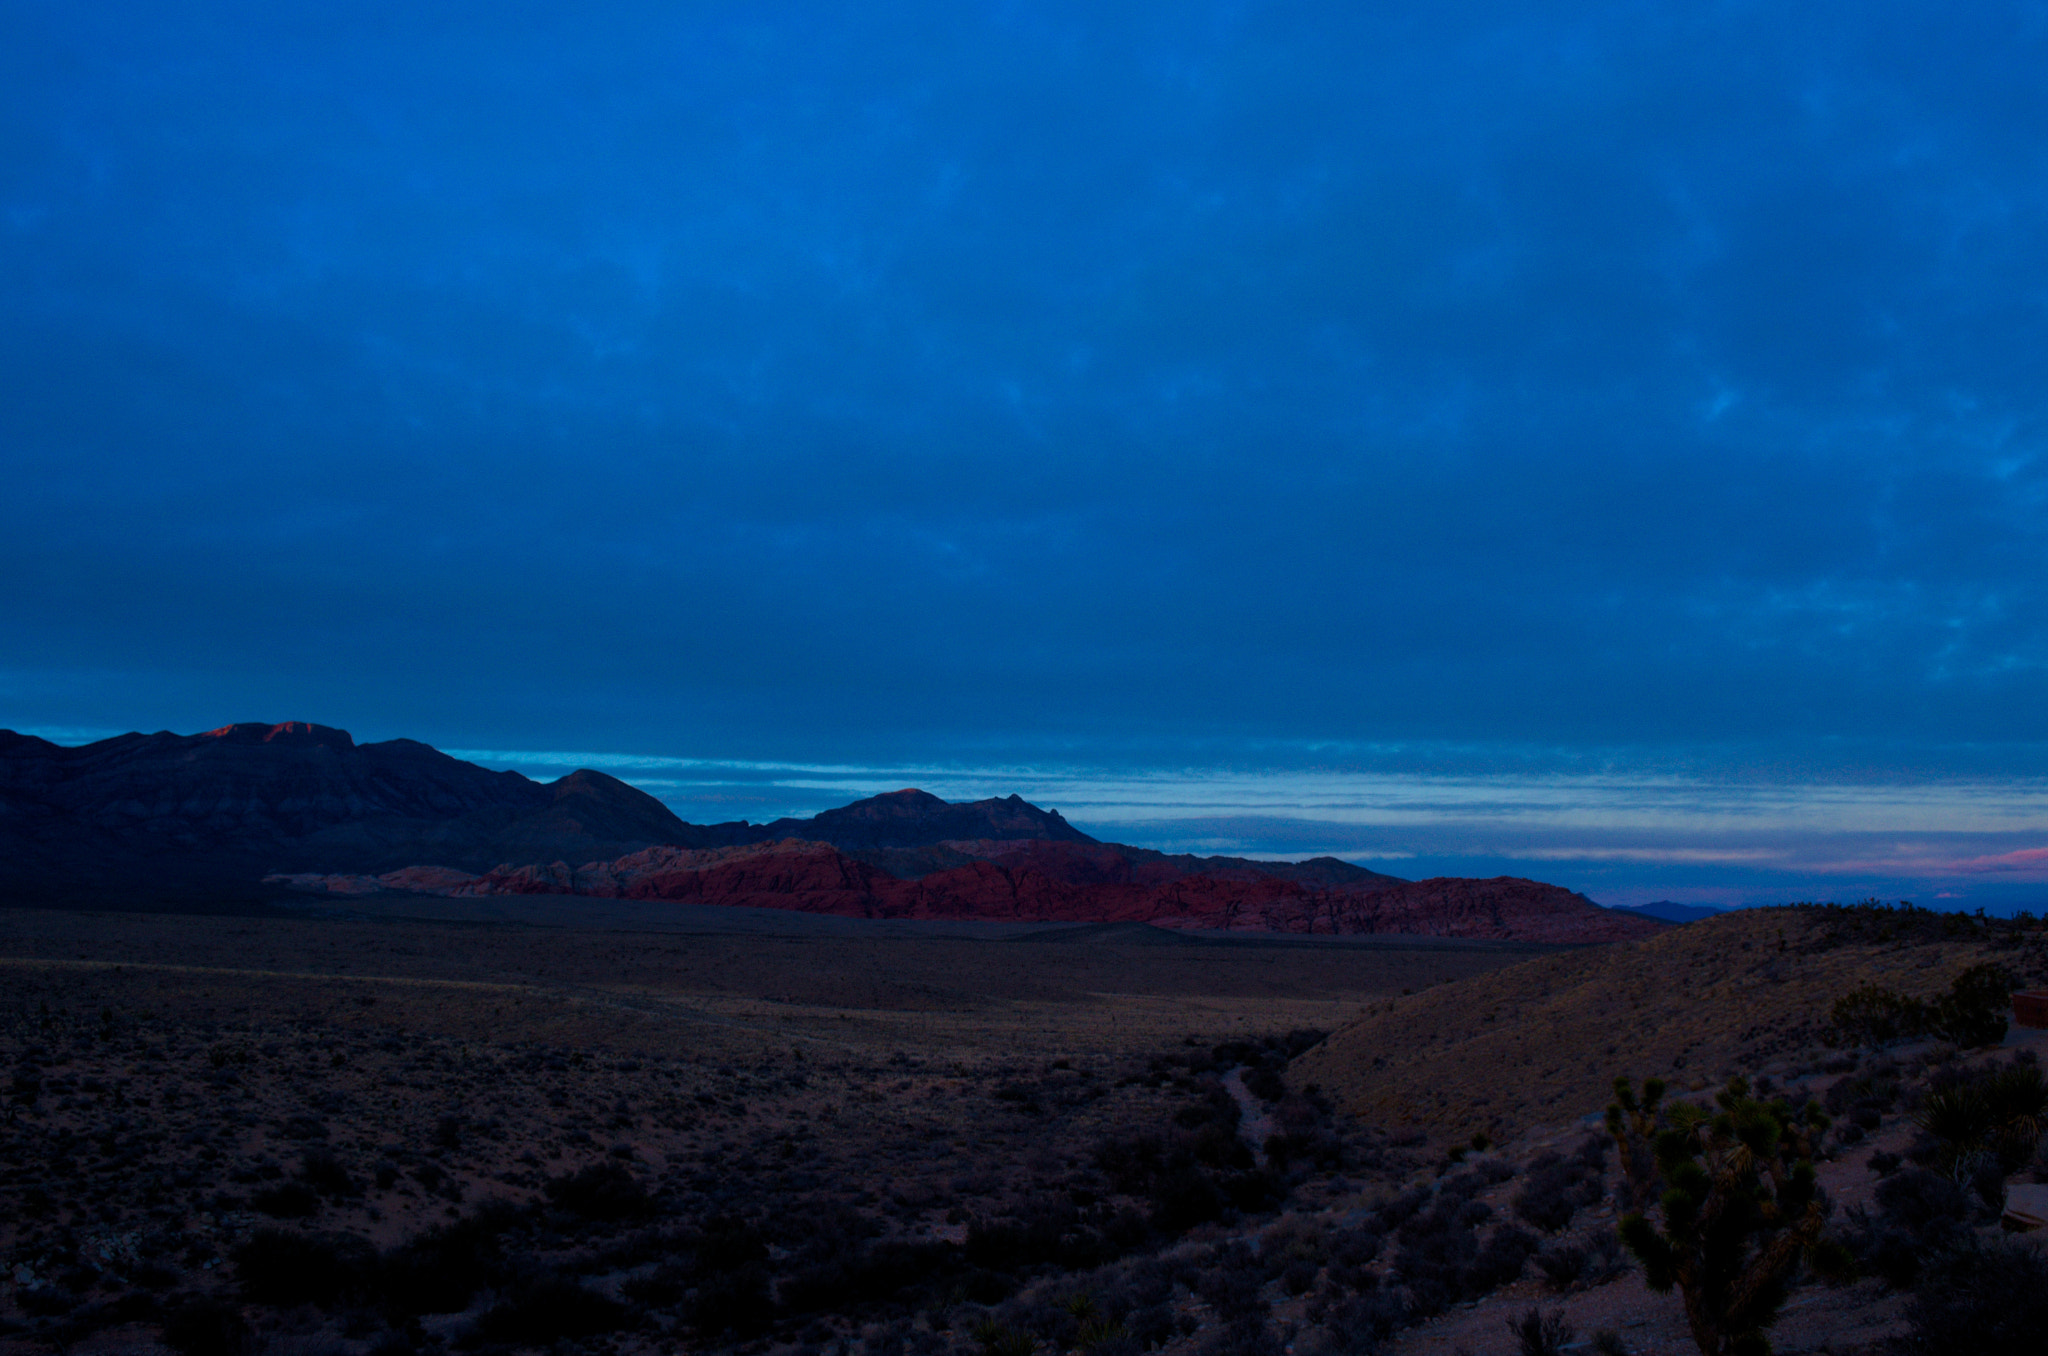 Photograph Red Rock Overlook at Dusk by David Horton on 500px